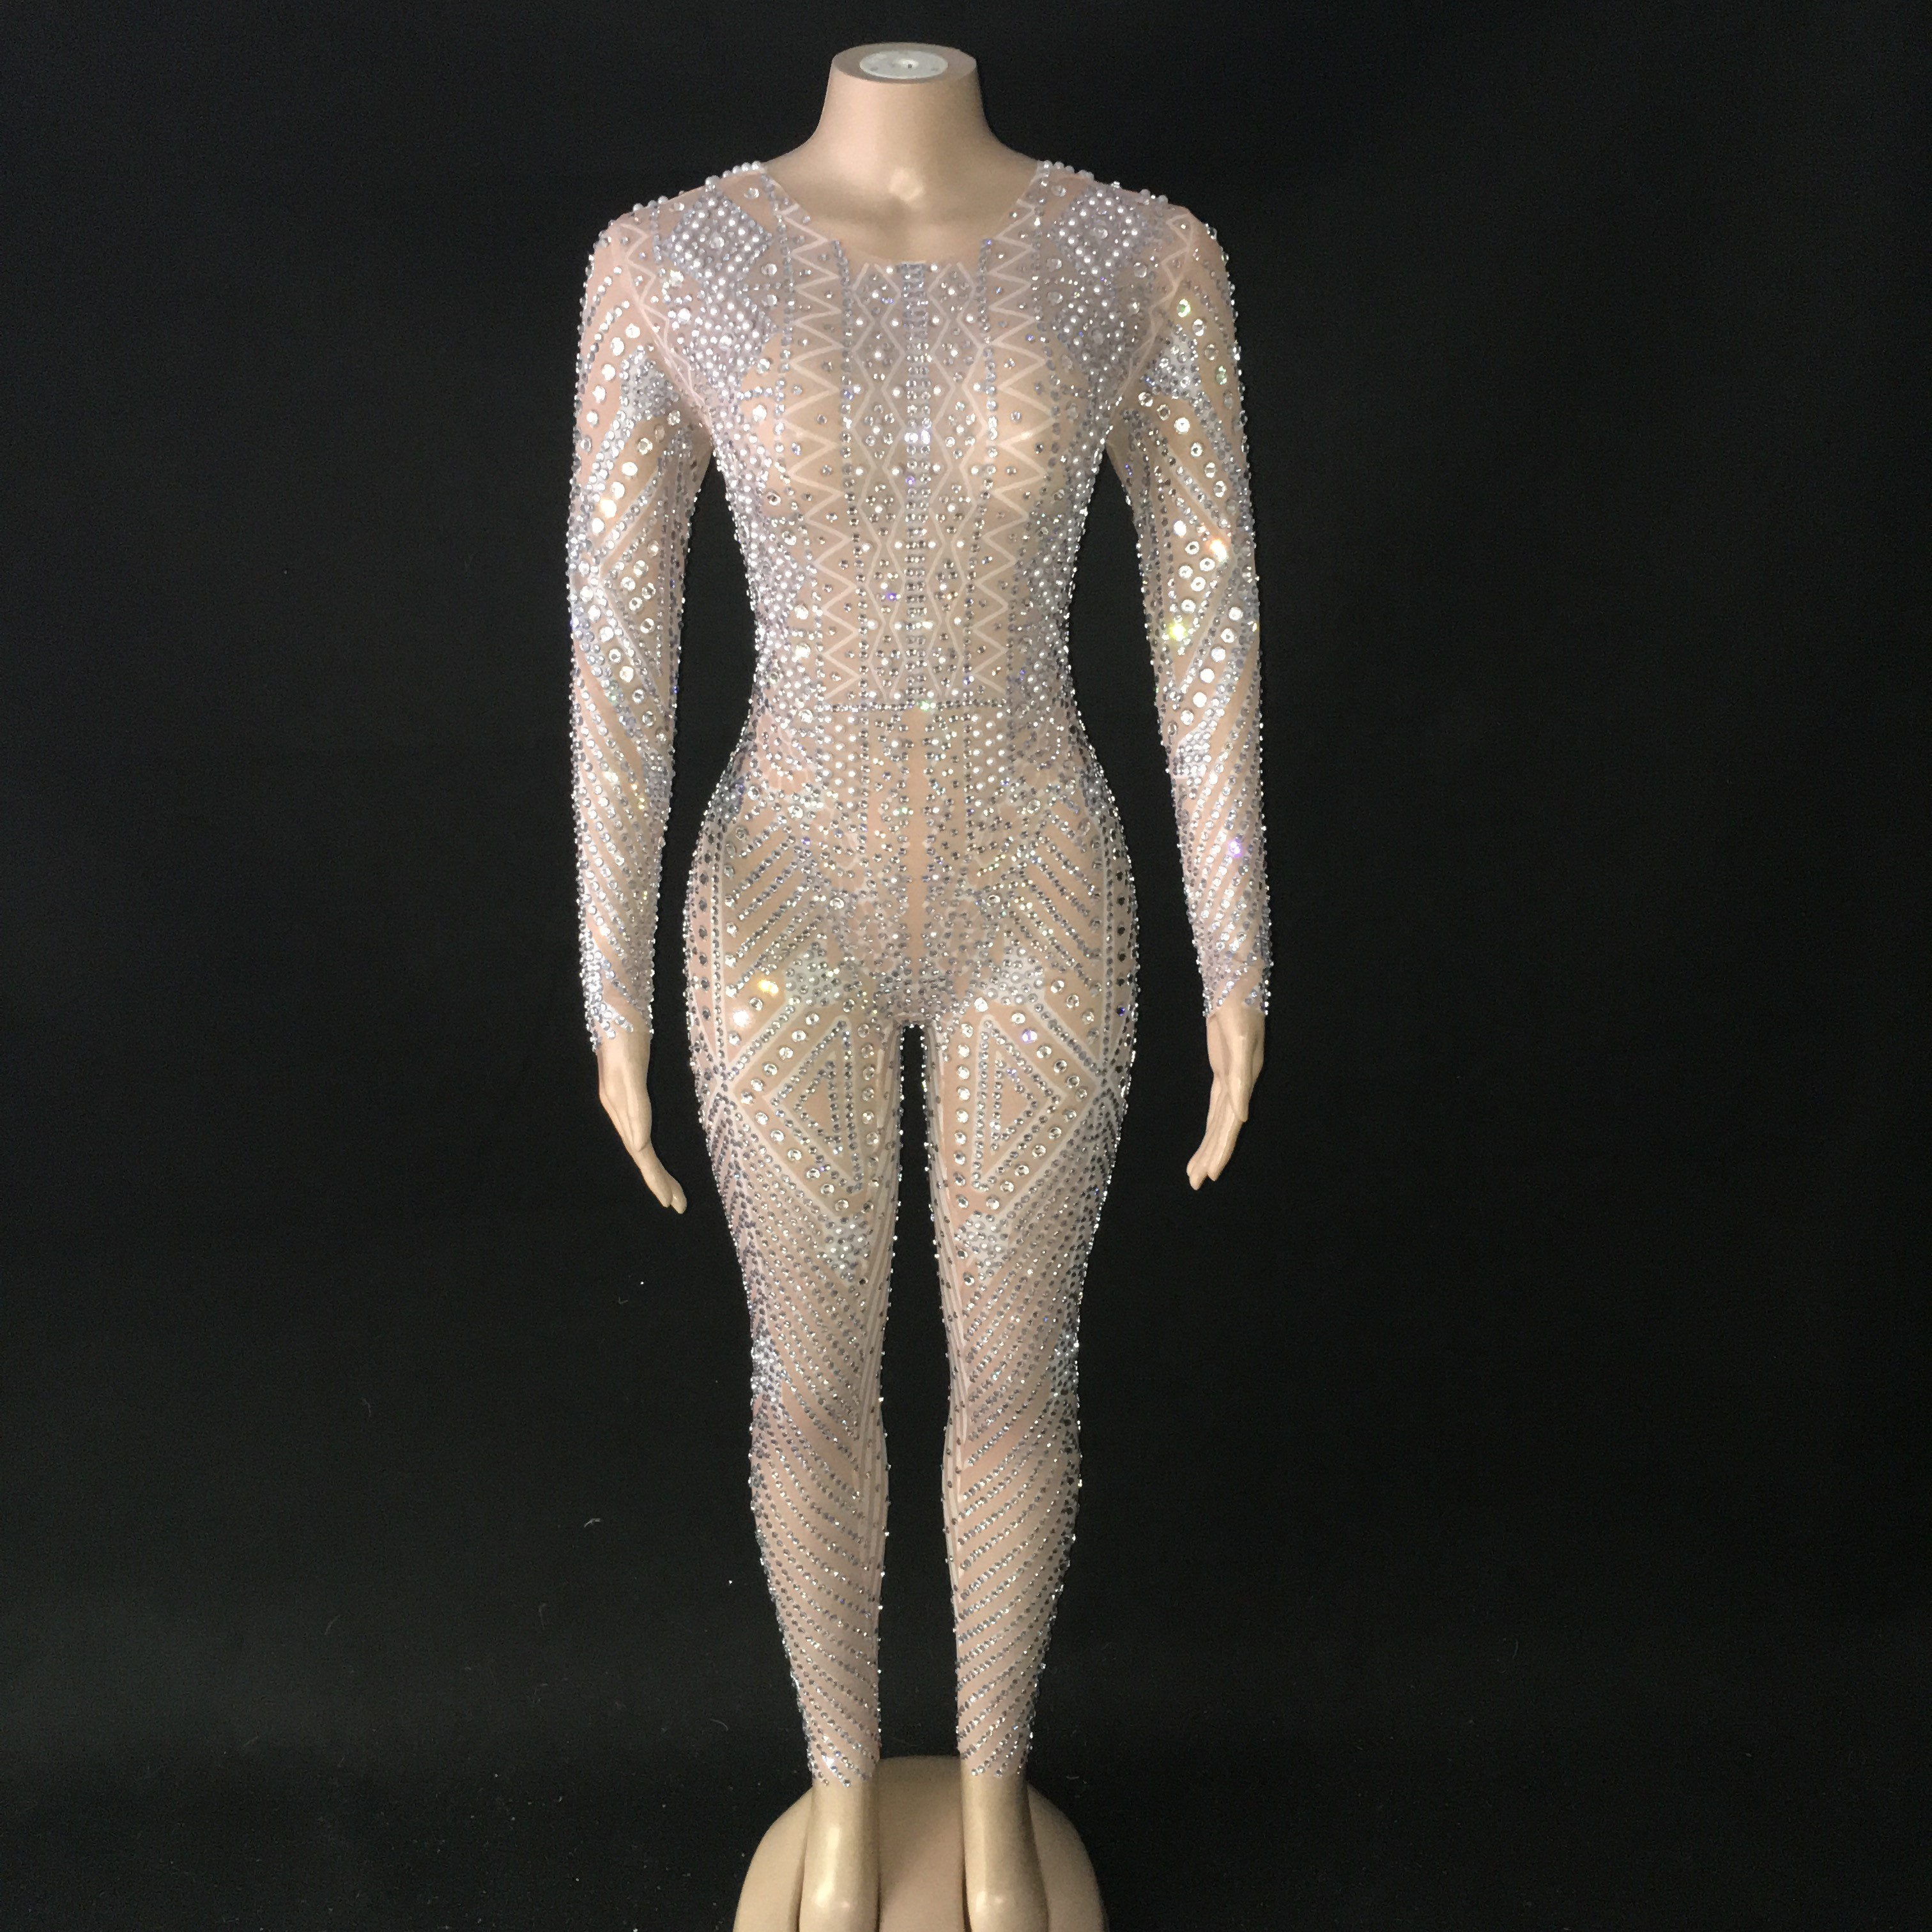 Mesh See Through Sparkly Bodysuit Rhinestone Long Sleeve Jumpsuit Evening   Birthday Celebrate Costume Perspective Outfit YOUDU